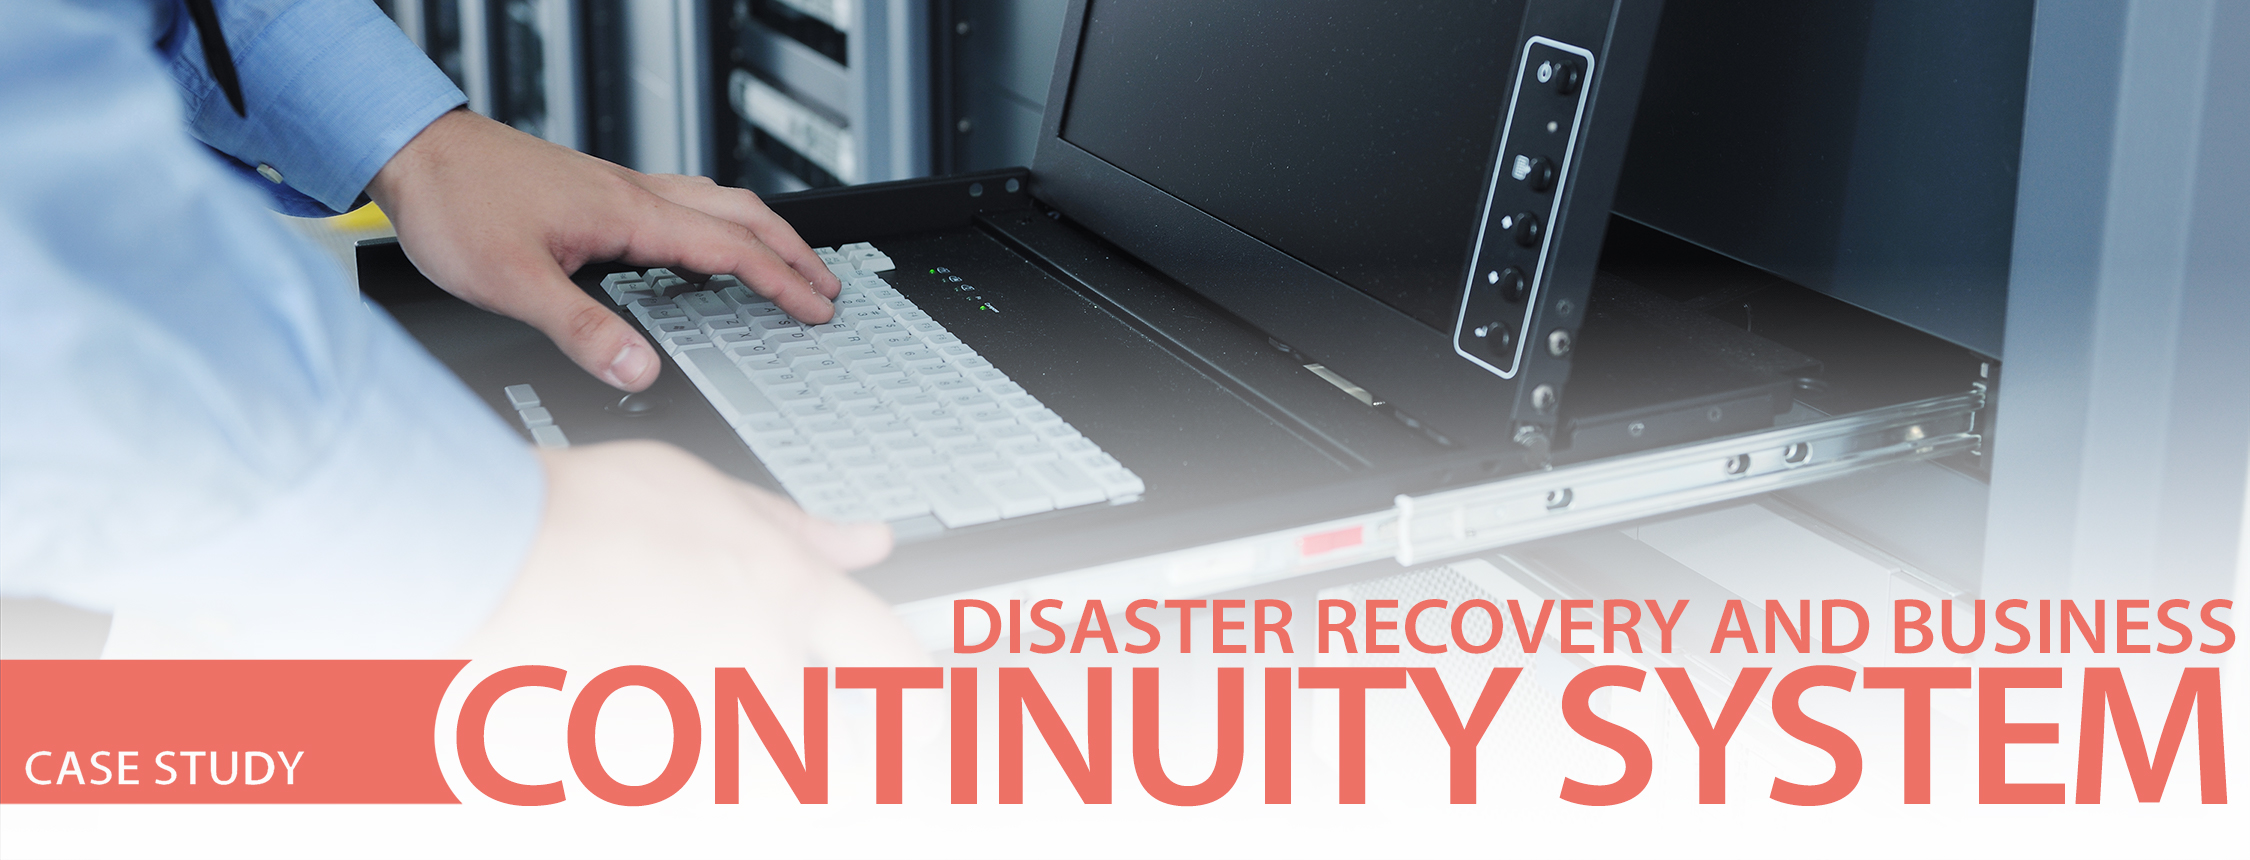 disaster recovery and business continuity solutions case study header